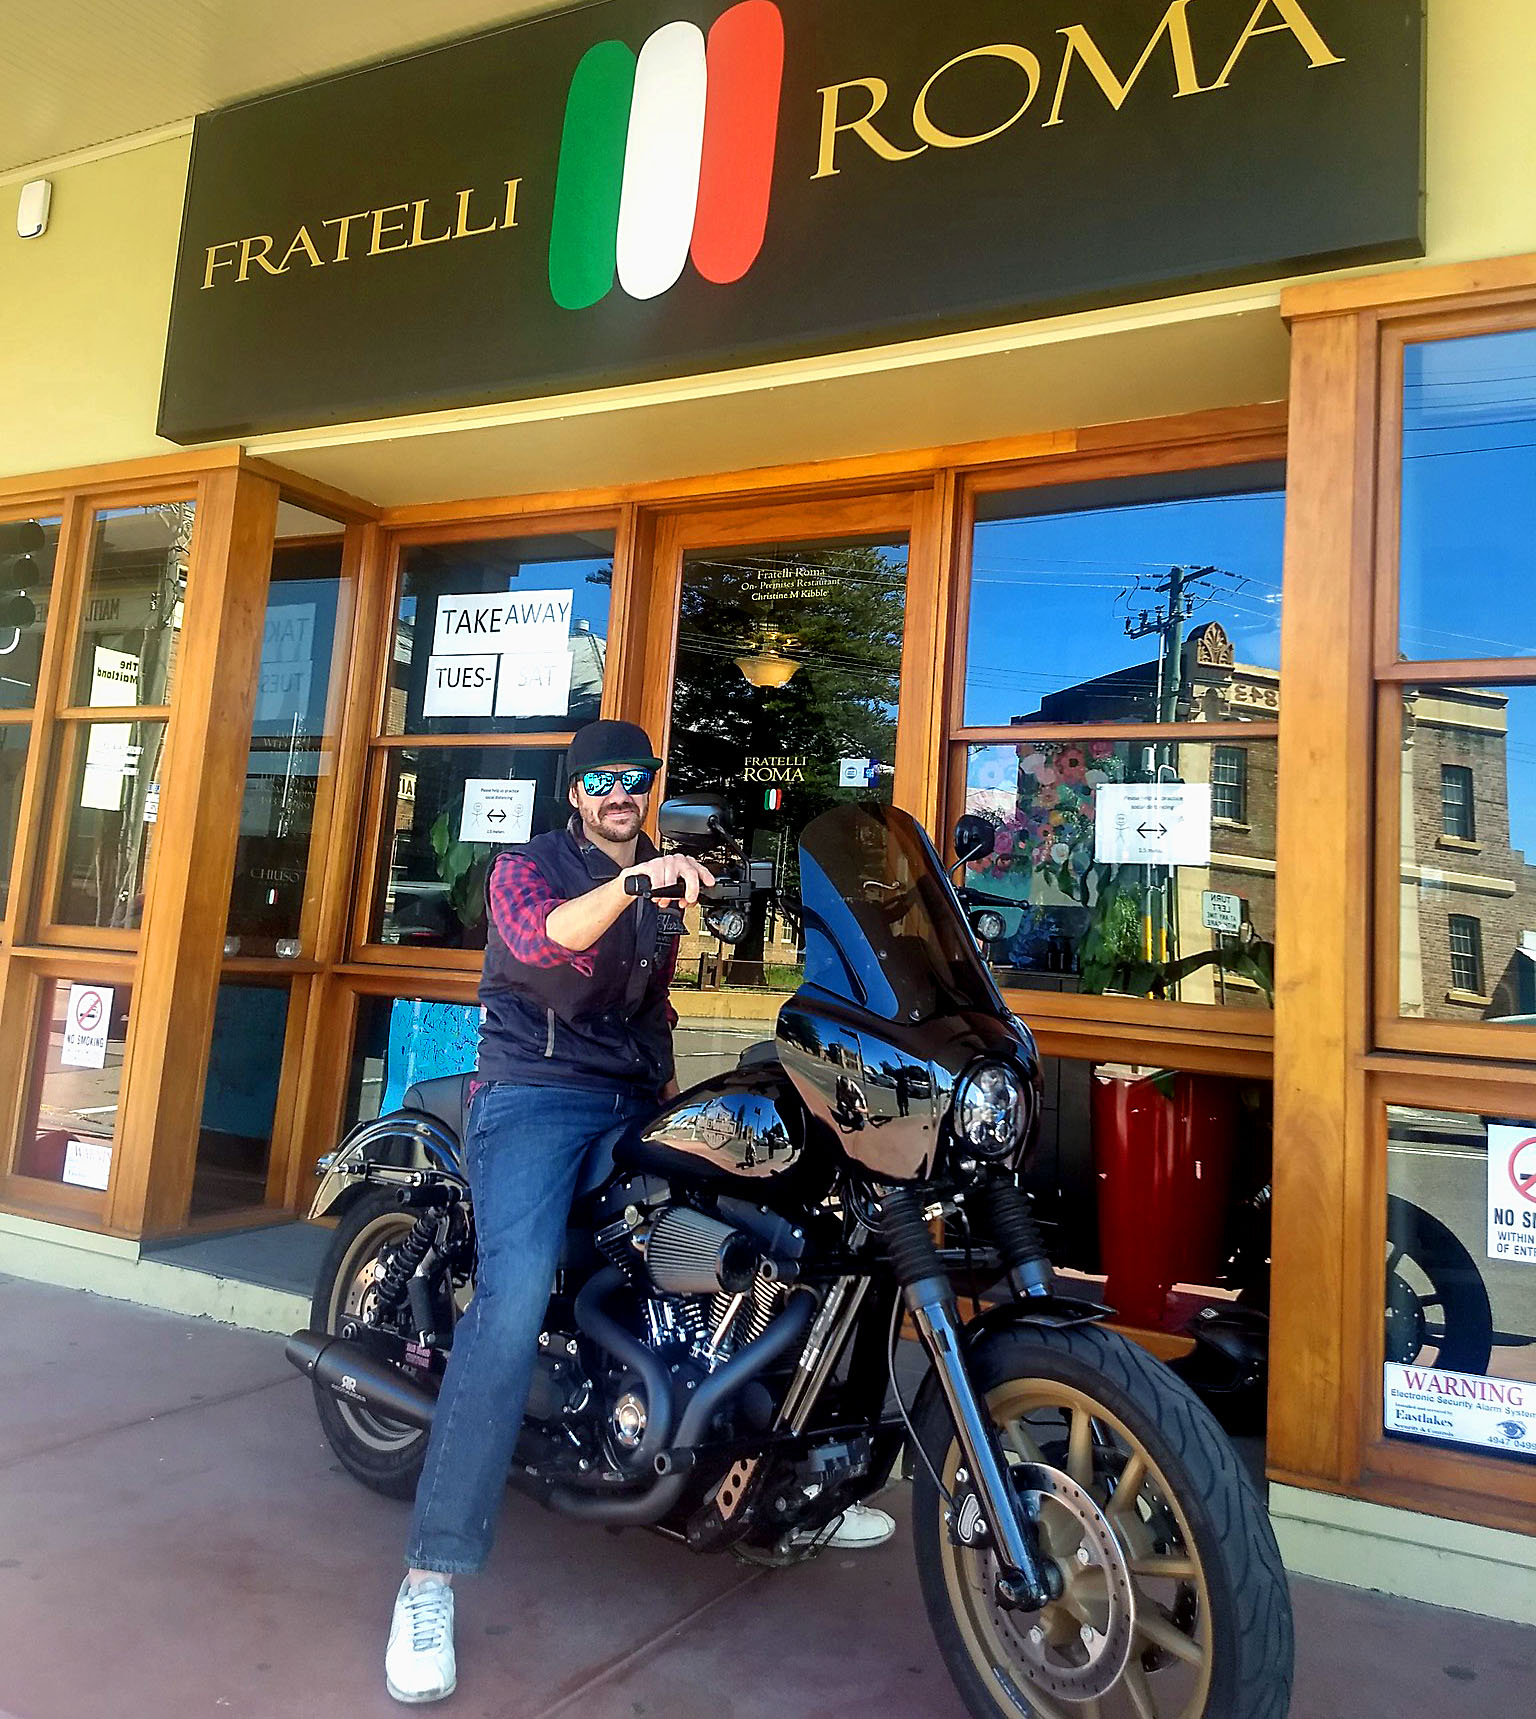 Chef Dan loves to ride and cook great Italian meals at Fratelli Roma (R Eime)